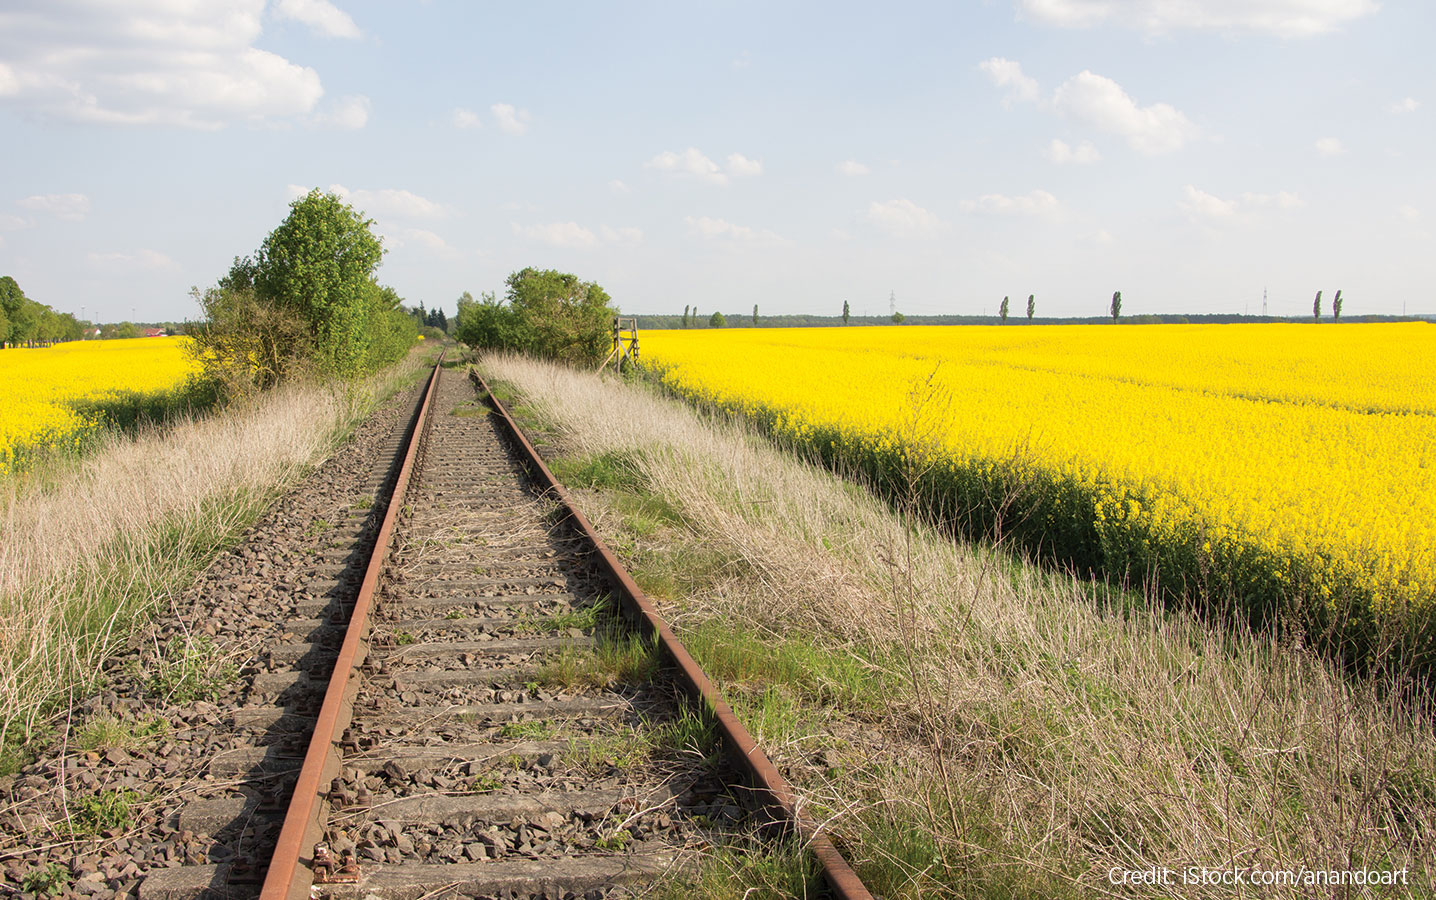 Rail line running through a canola field